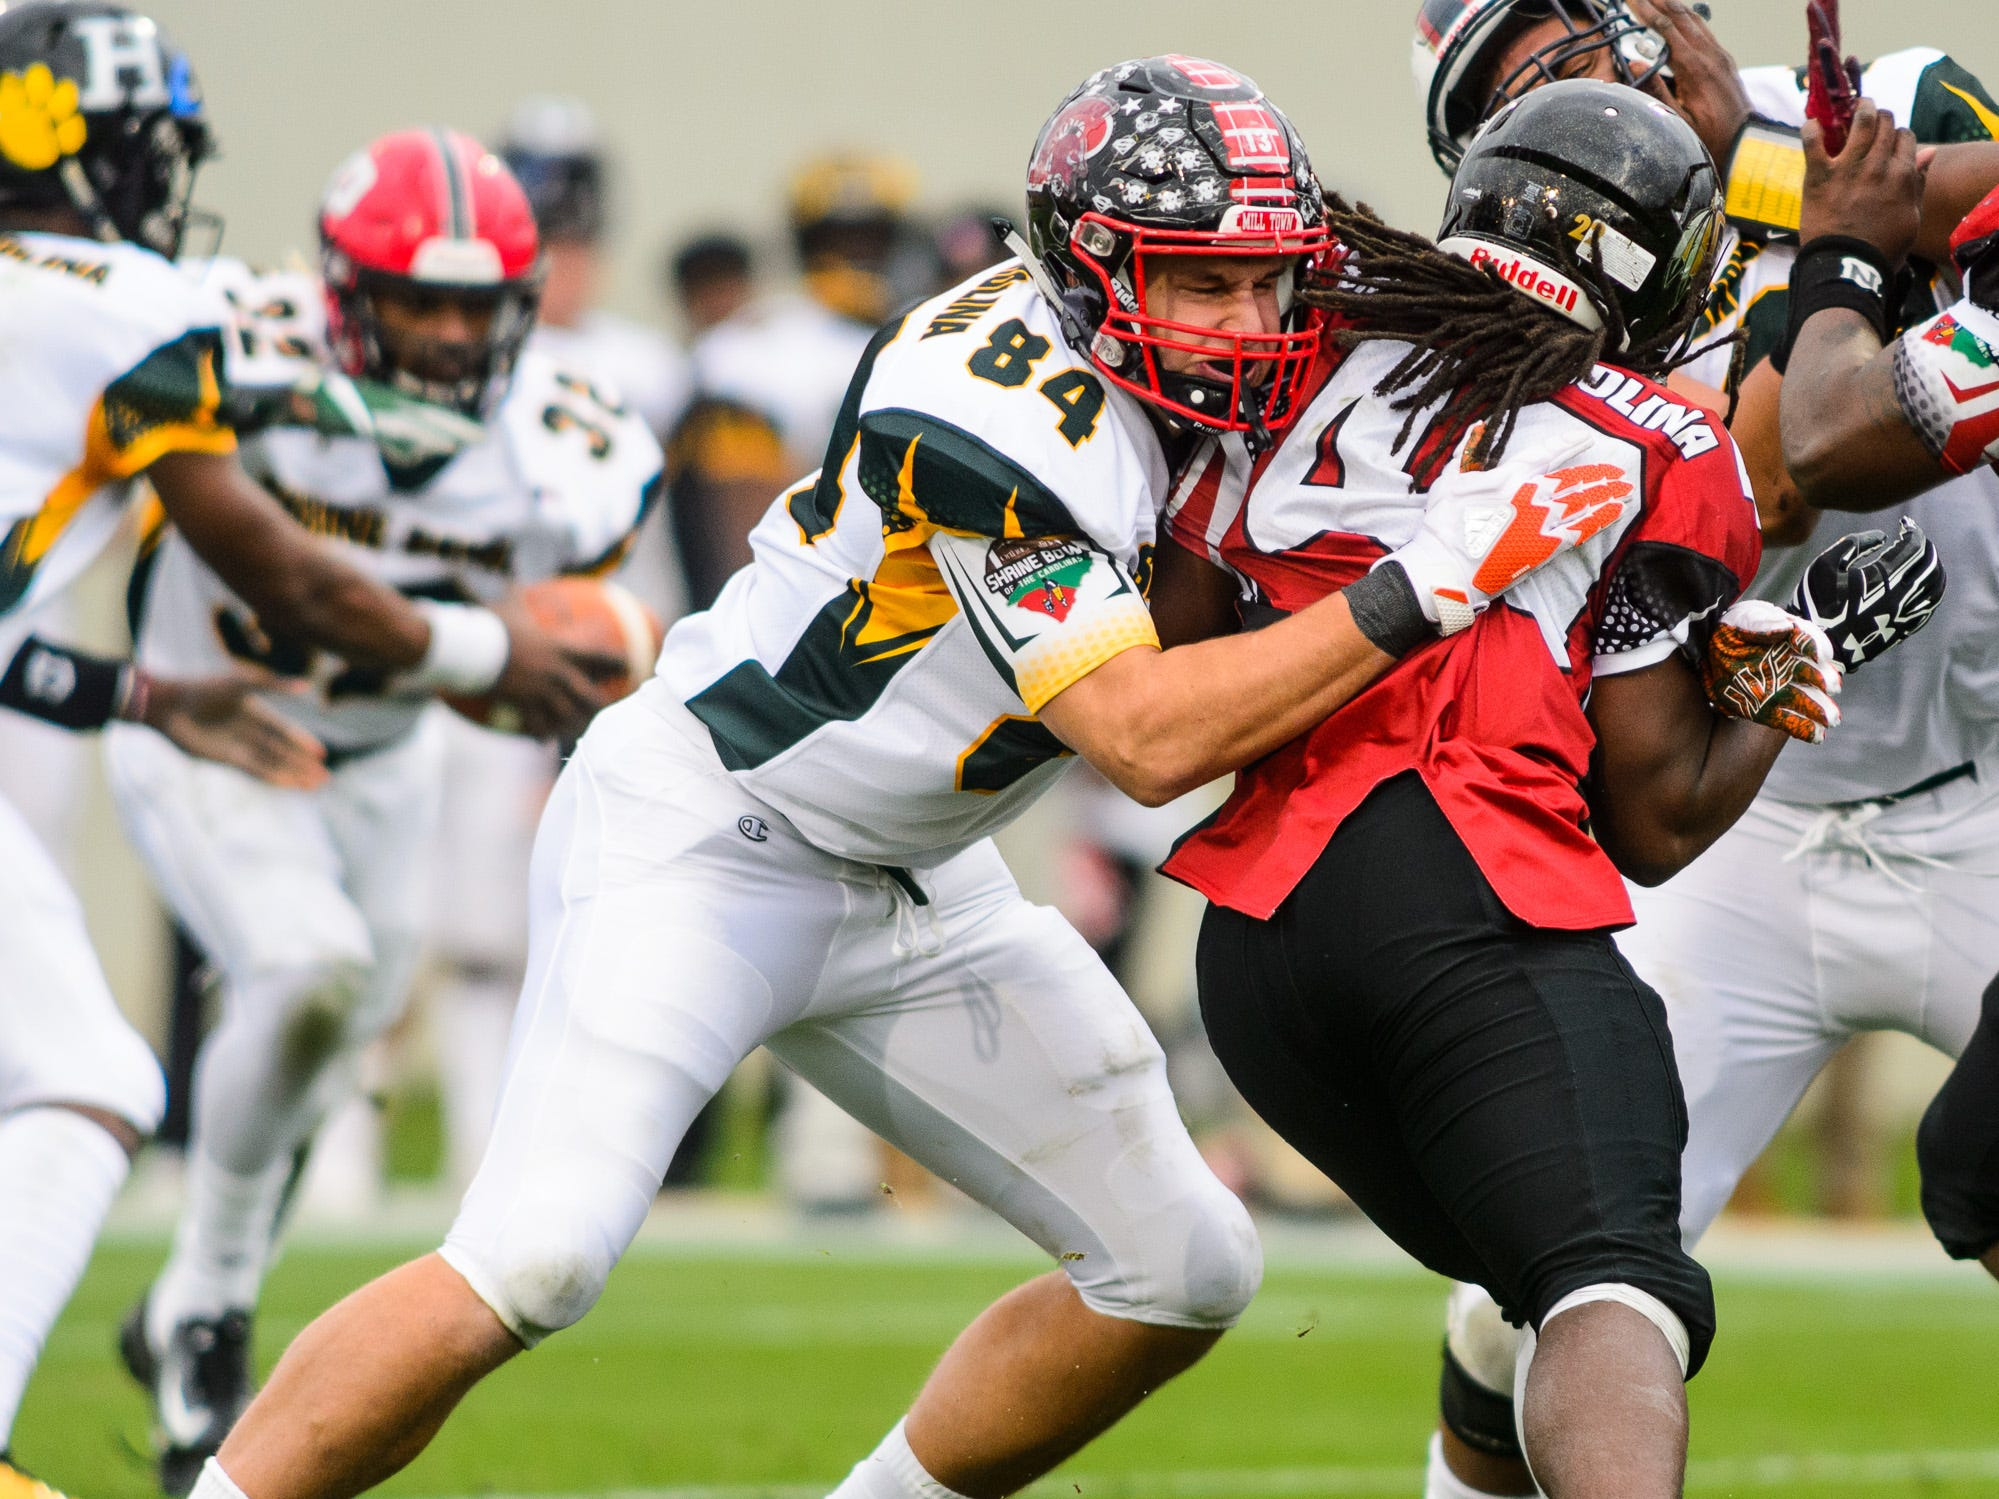 Pisgah tight end Kam Walker (84) blocks a defender during the 82nd annual Shrine Bowl of the Carolinas on Saturday, December 15, 2018 at Wofford's Gibbs Stadium in Spartanburg, SC.